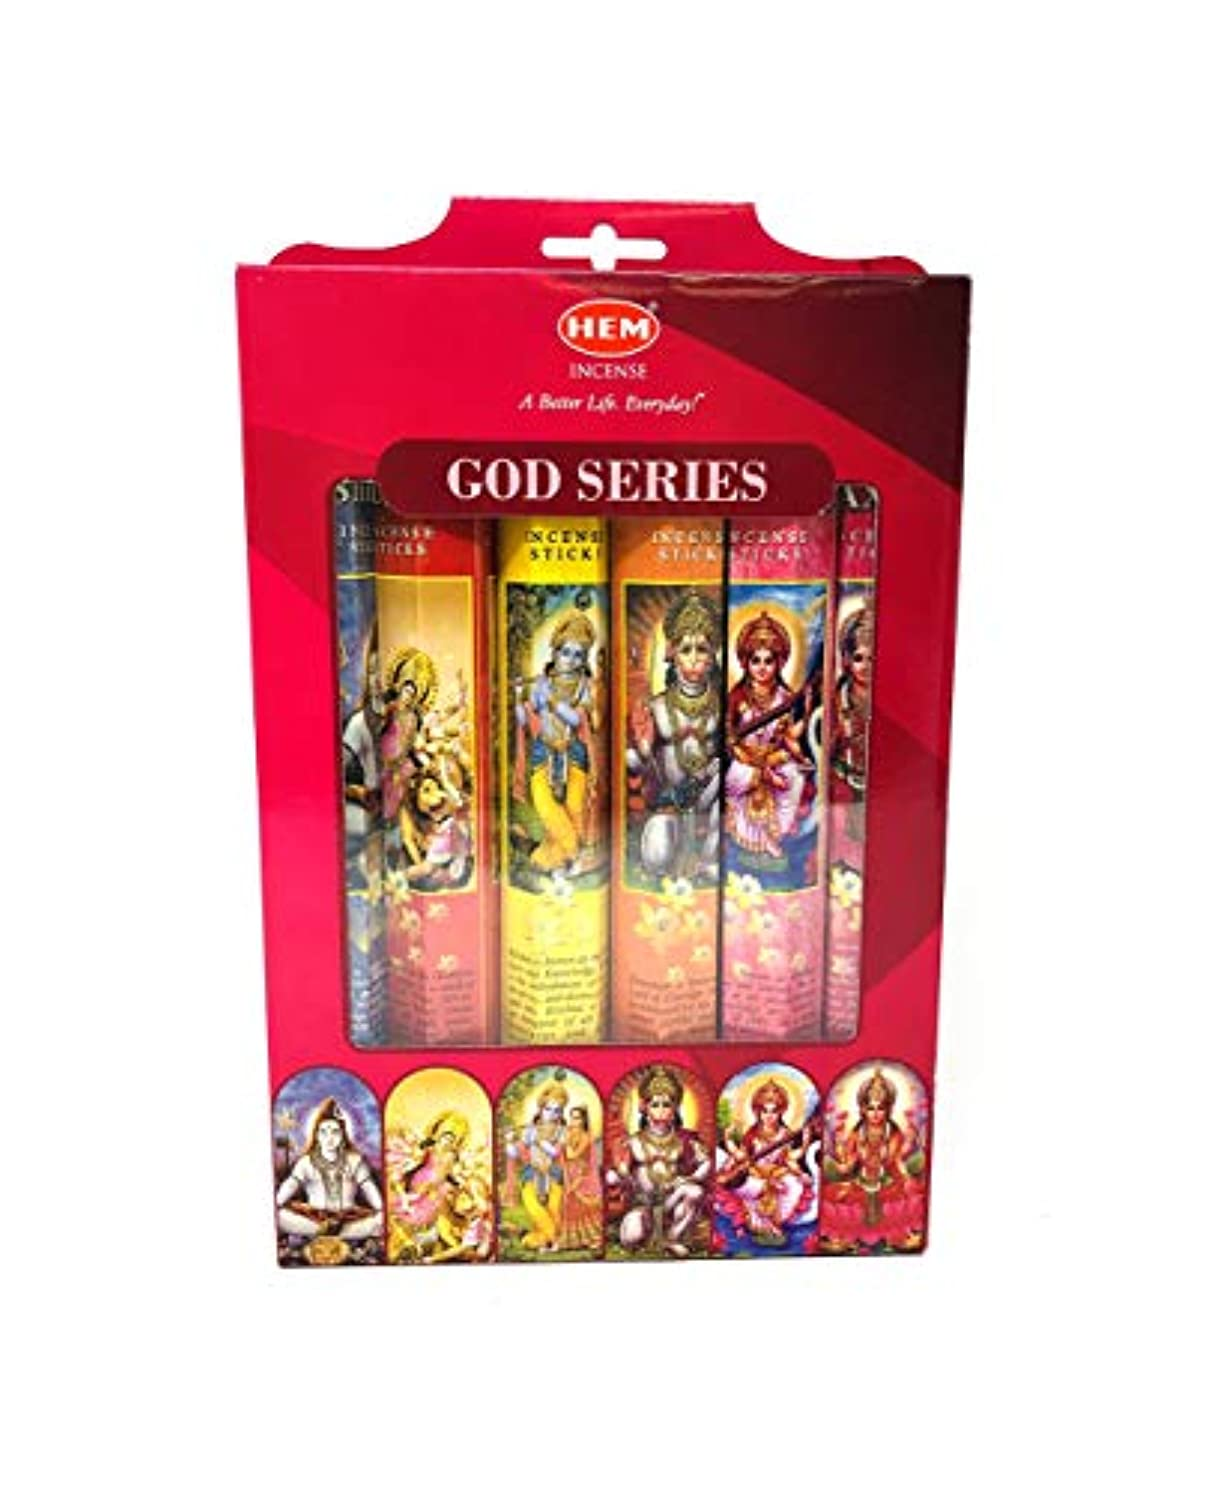 法医学破産受信Hem Indian God Series Incense Sticks Variety Combo #1 6 x 20 = 120 Total by Hem